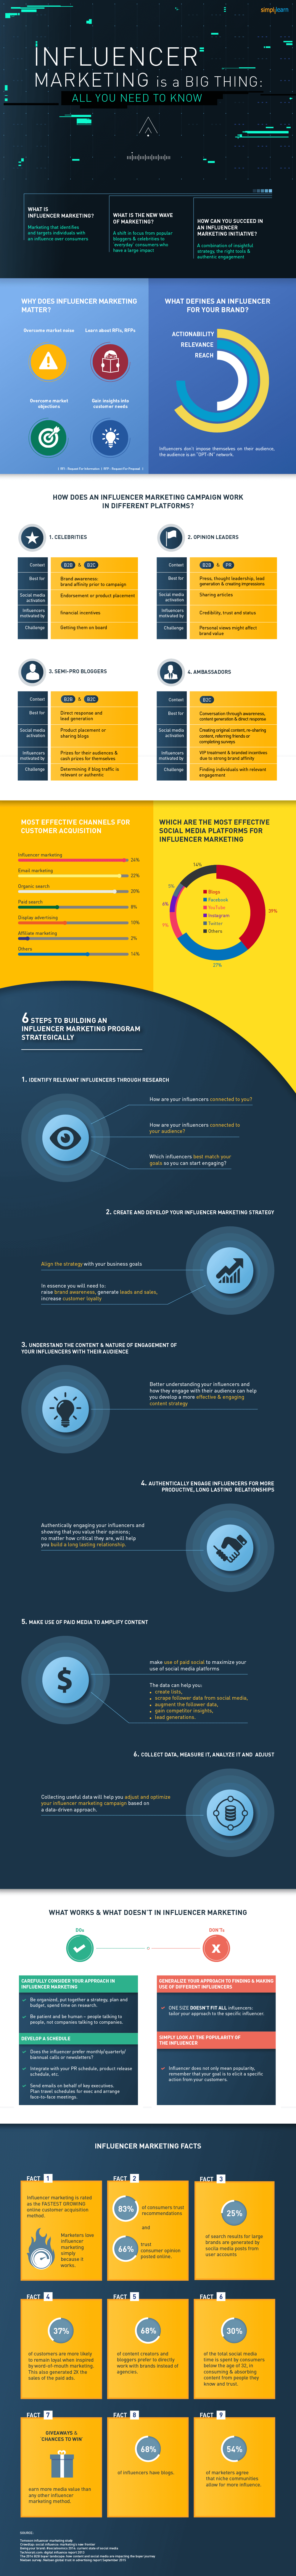 Influencer marketing is a big thing infographic